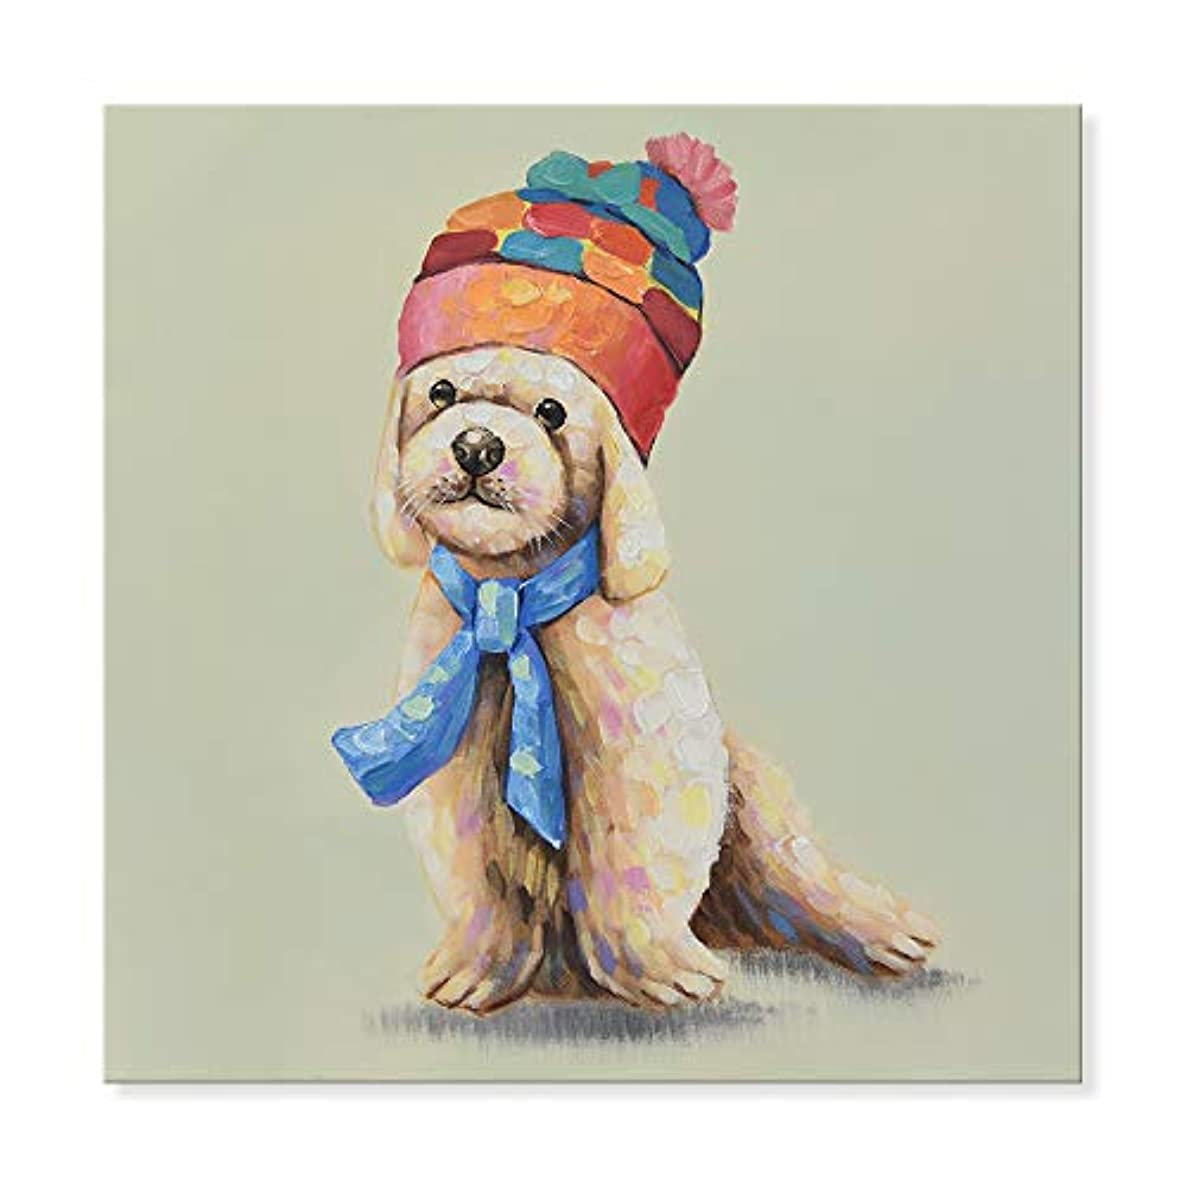 SEVEN WALL ARTS - 100% Hand Painted Oil Painting Animal Cute Poodle Wears a Colorful Hat with Stretched Frame 24 x 24 Inch